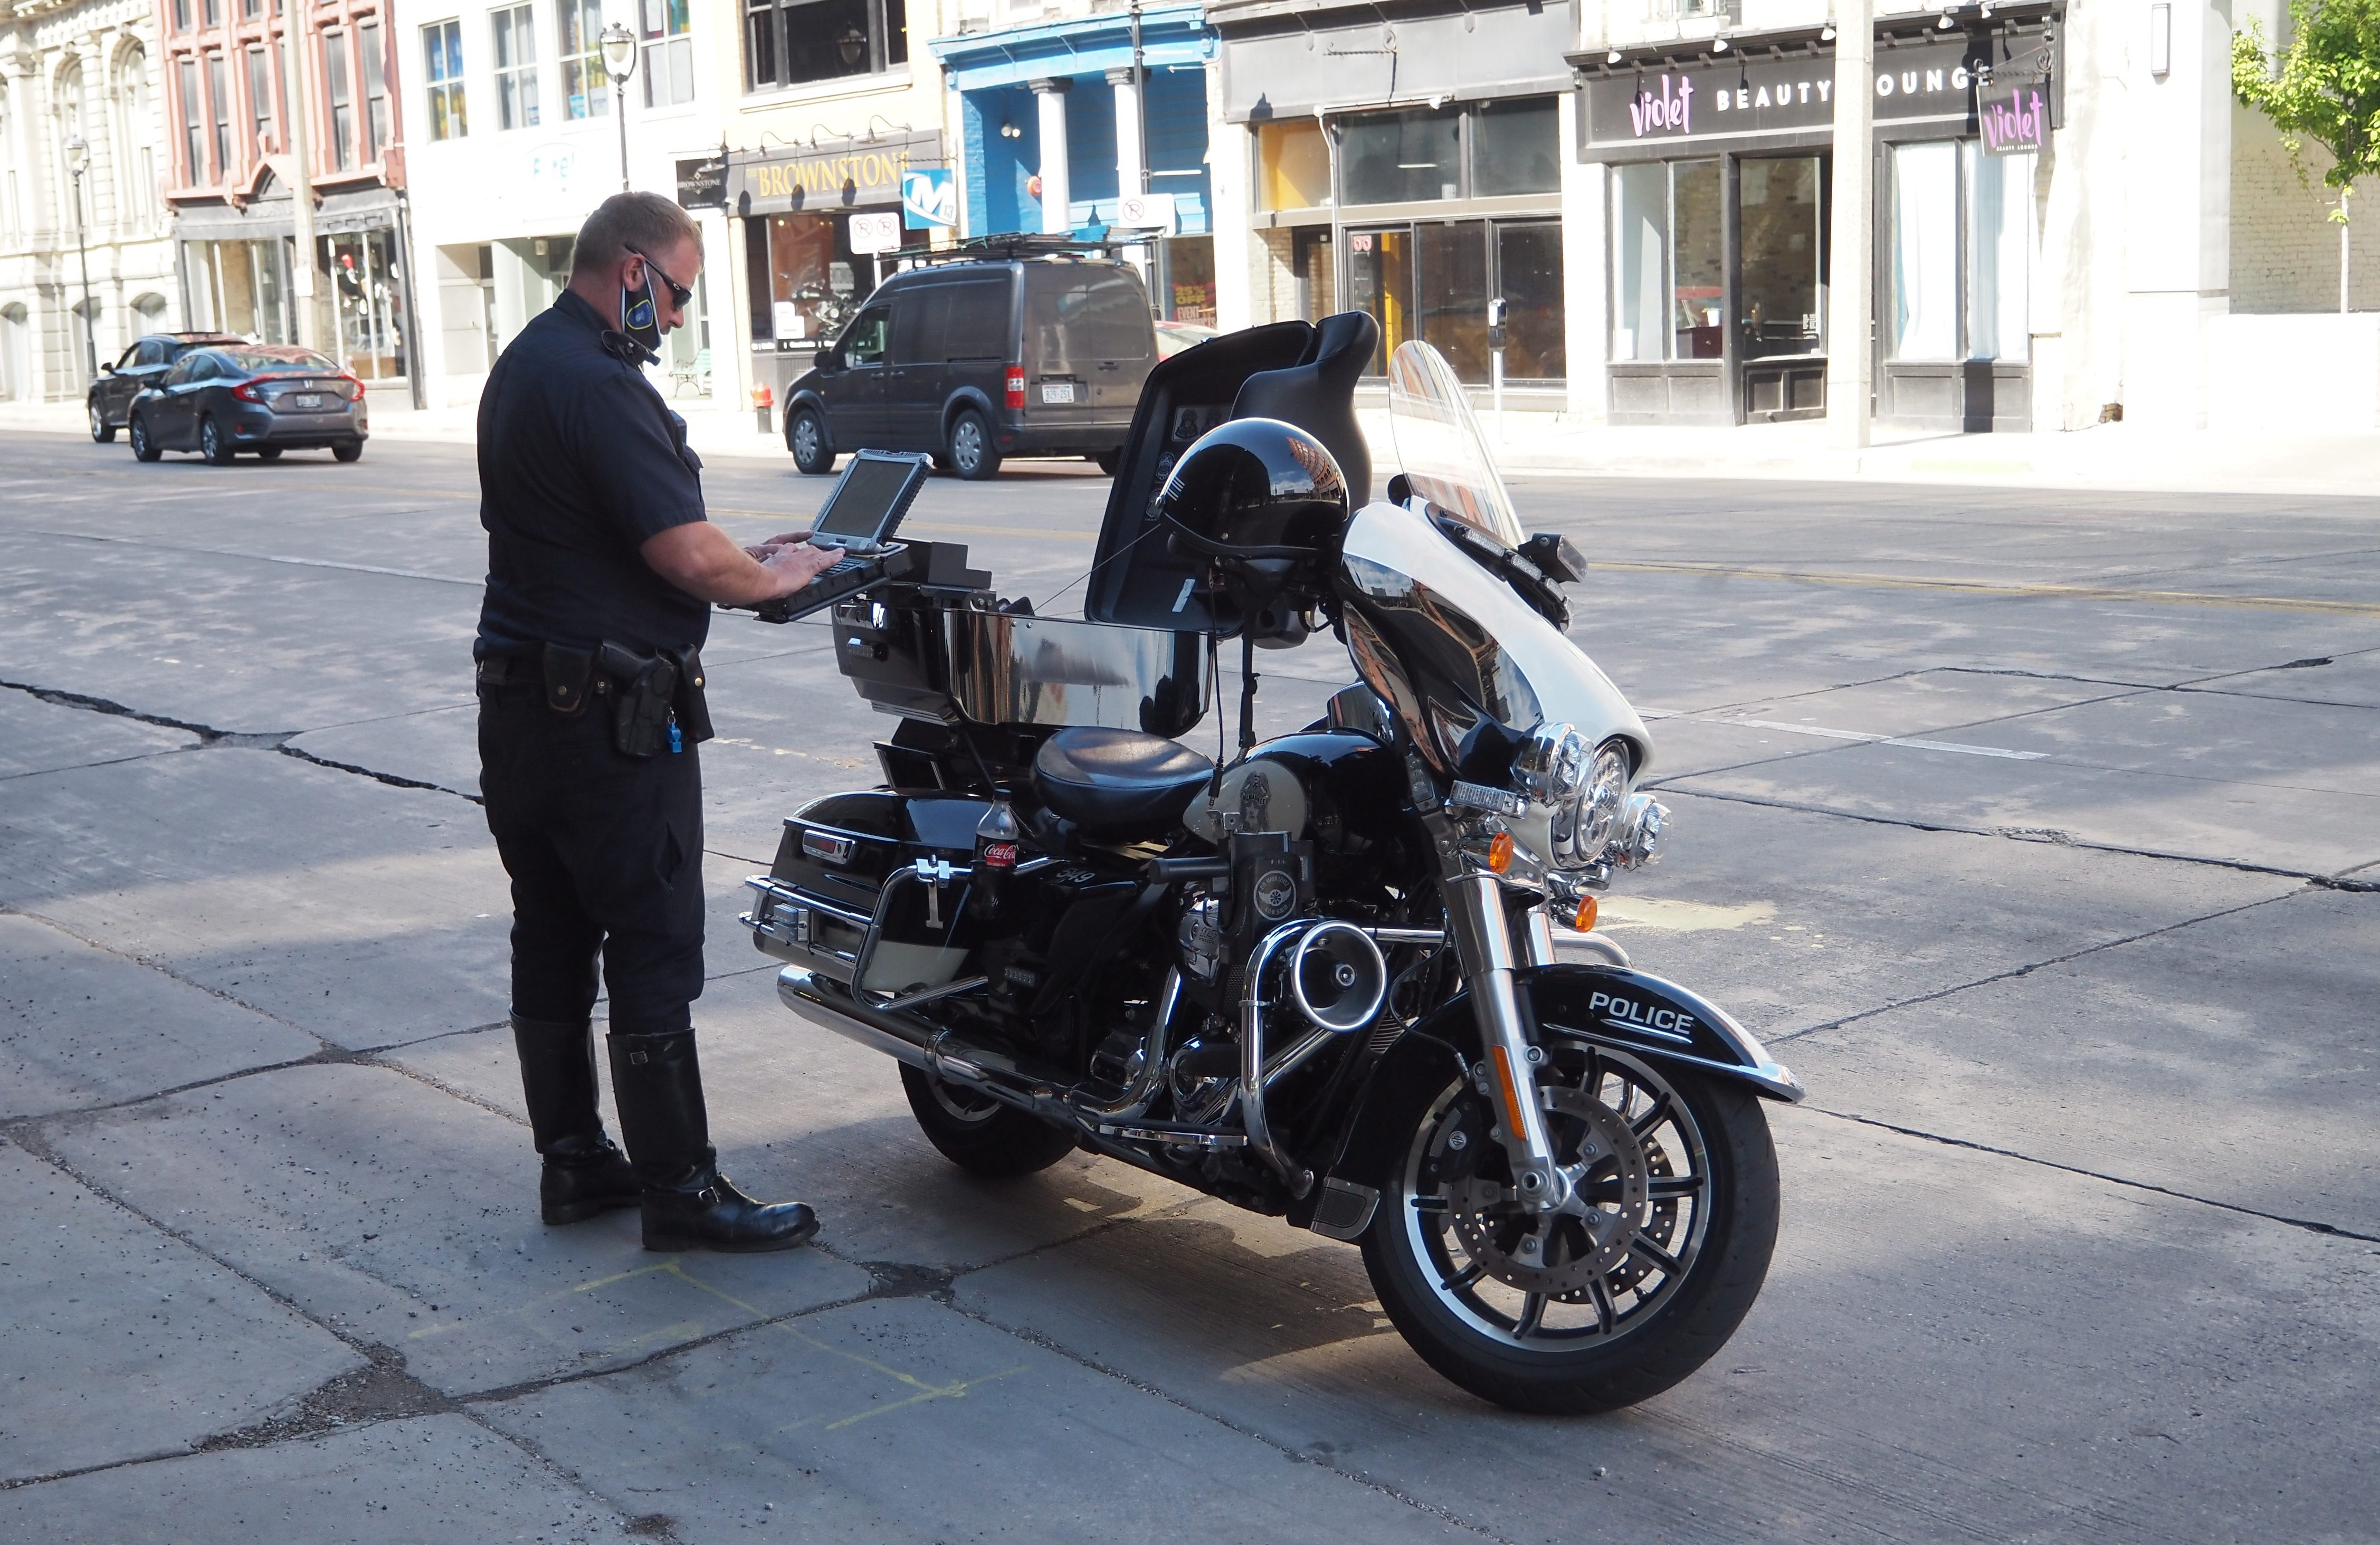 A Milwaukee Police Department officer enters a report into a laptop after a traffic stop. Photo by Jeramey Jannene.